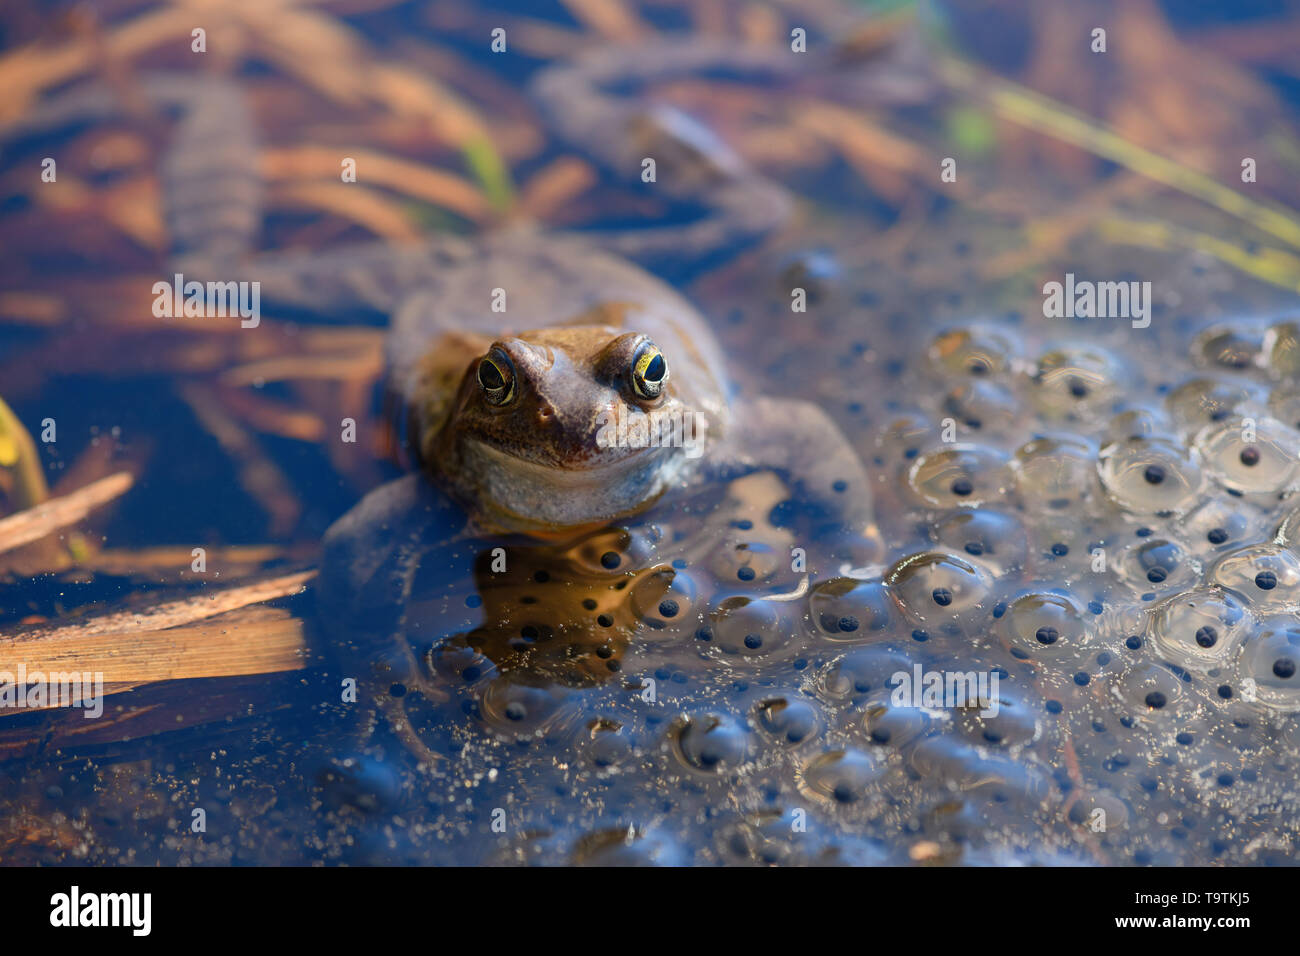 The European common frog (Rana temporaria) is in the spawn covered pond in spring. - Stock Image